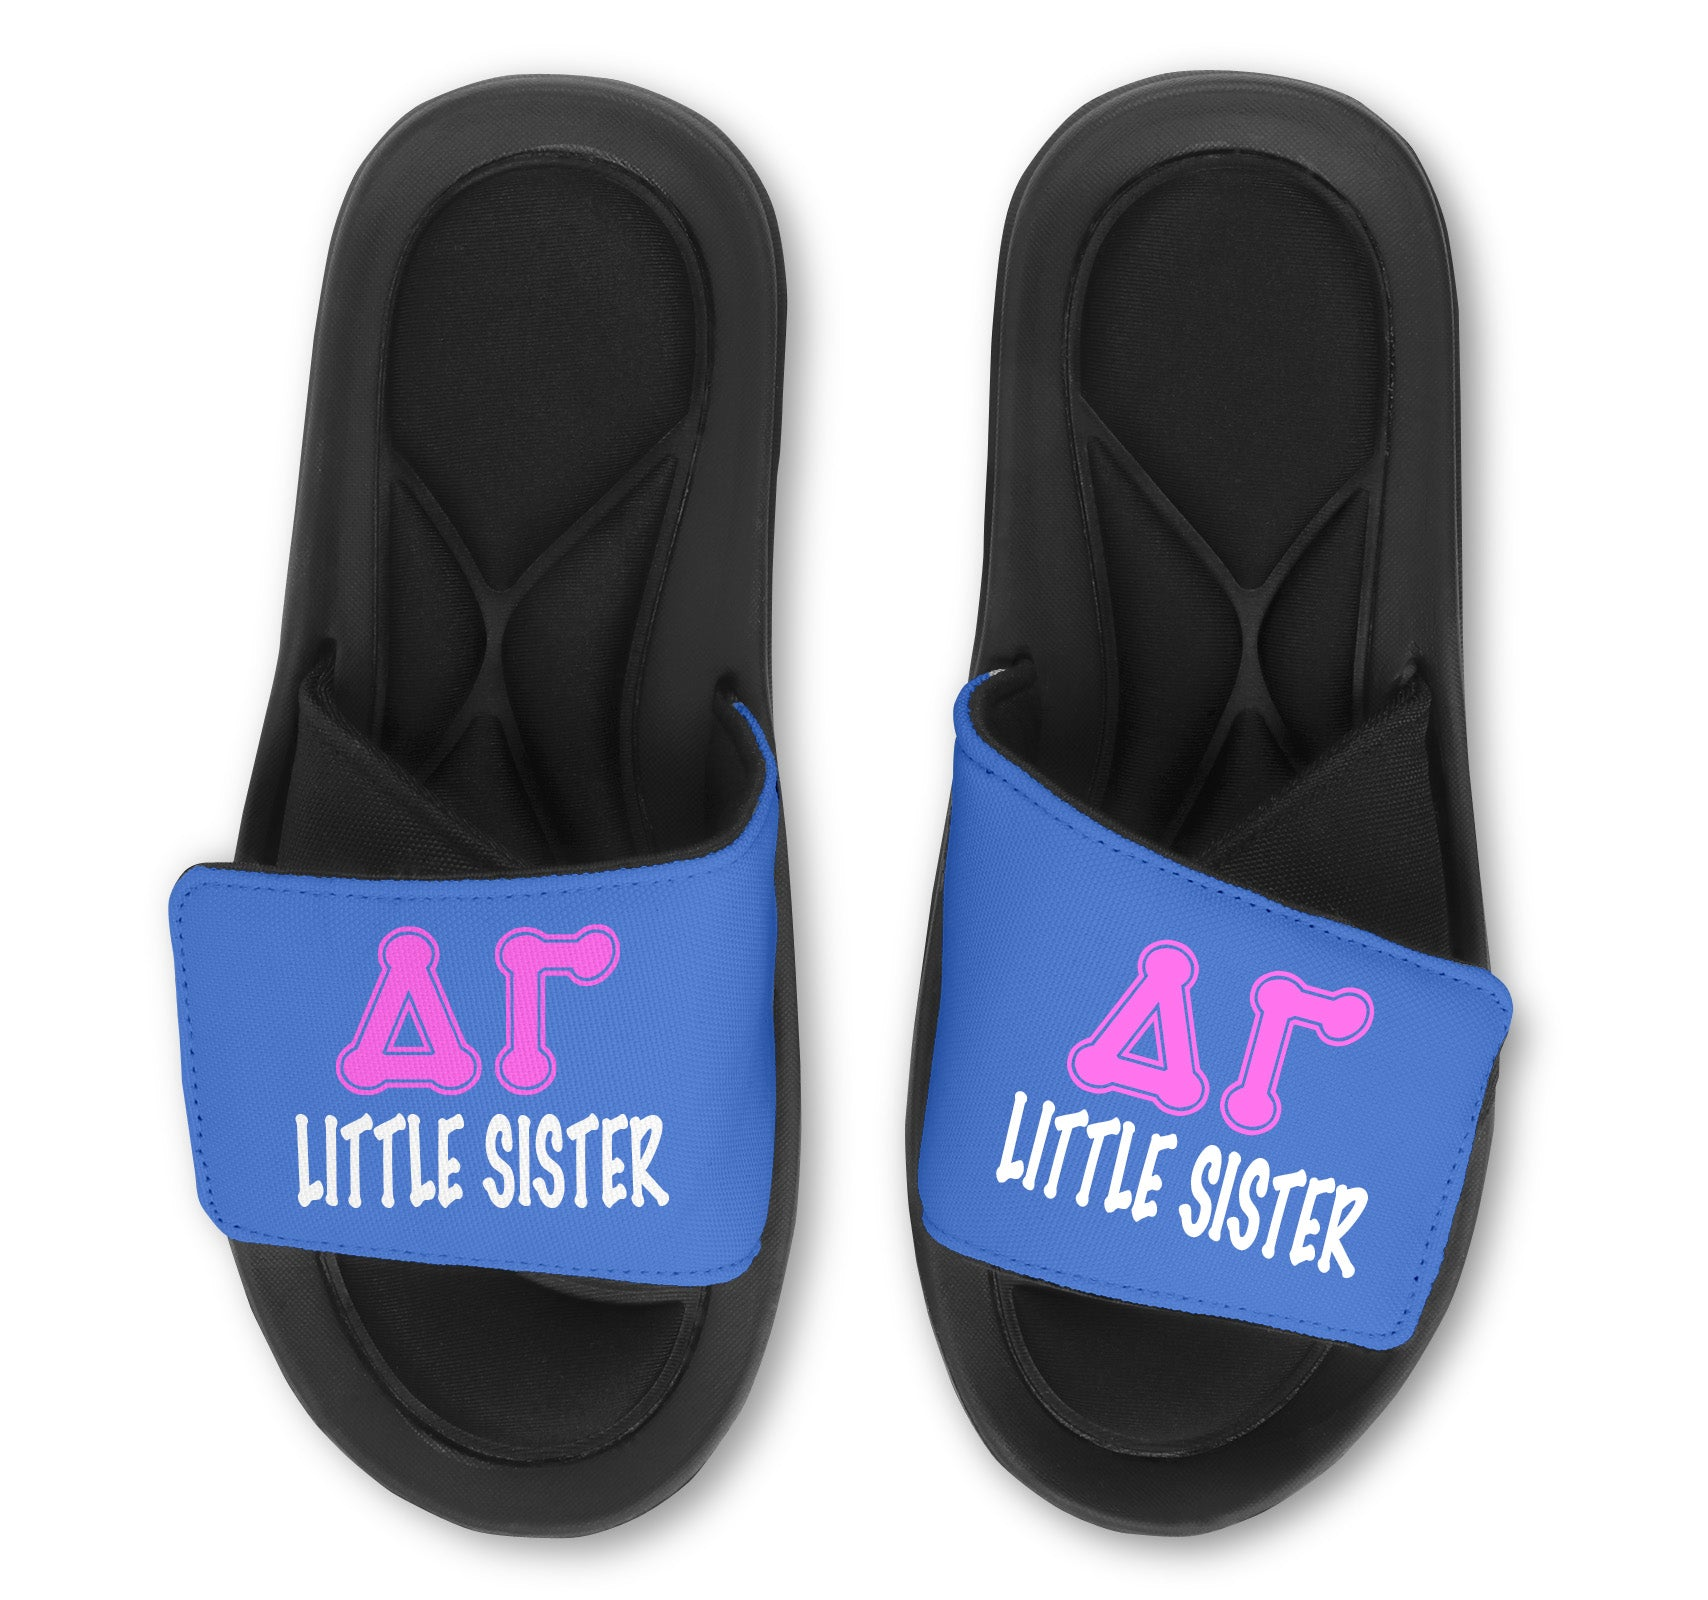 Alpha Delta Gamma Slides - Little Sister